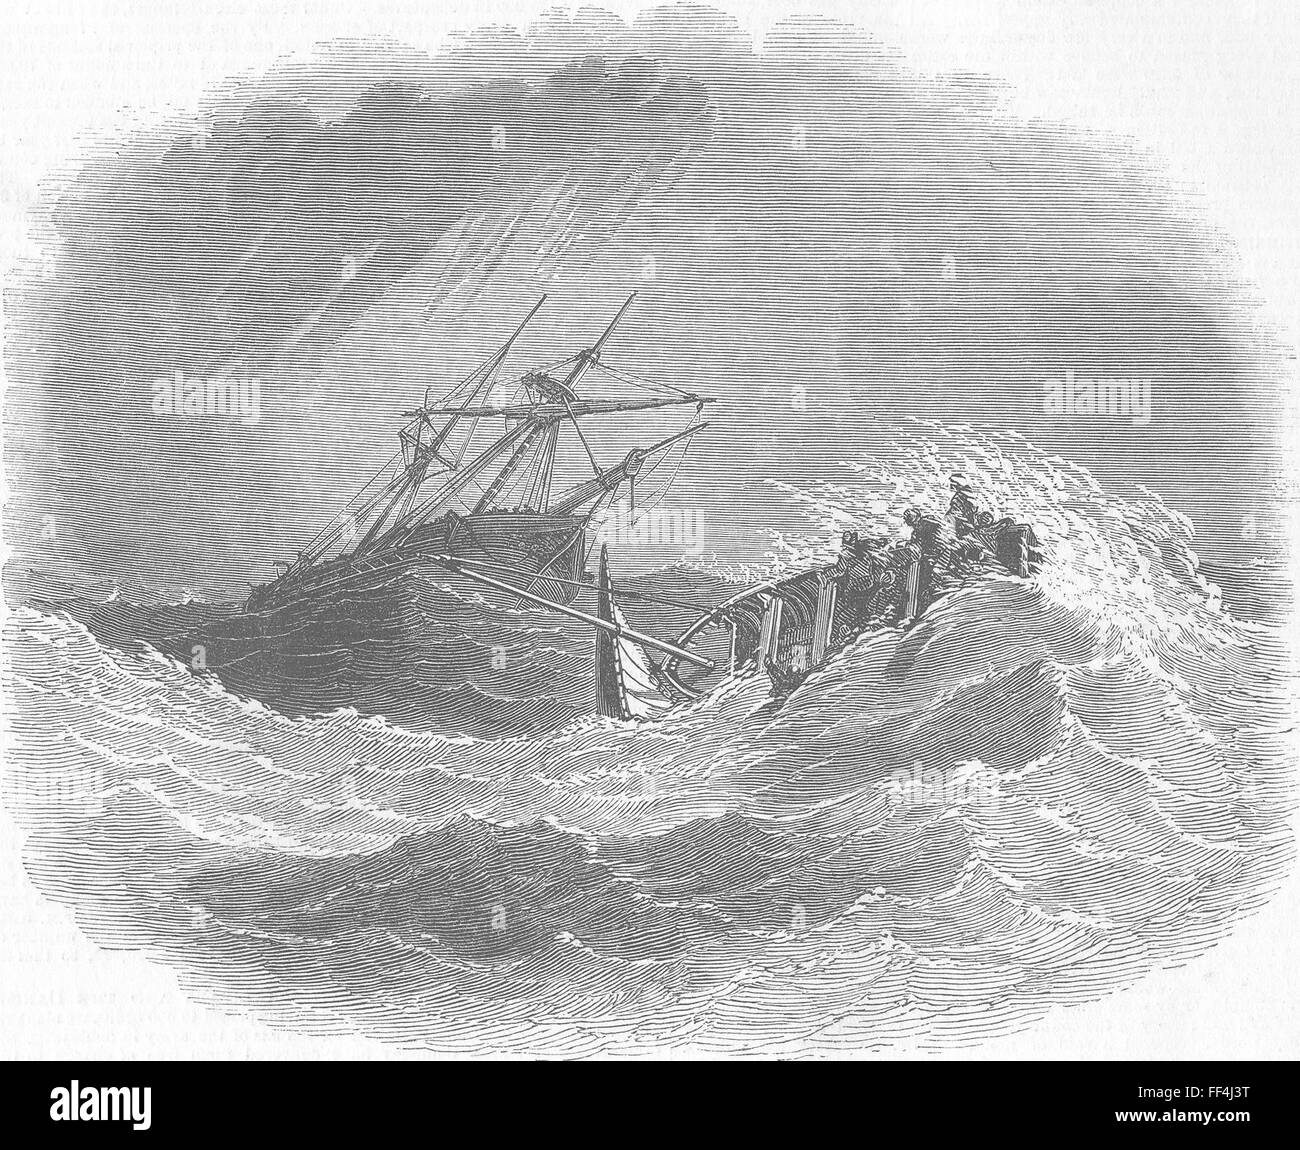 WORTHING Boat disaster & Lalla Rookh, distress 1850. Illustrated London News - Stock Image